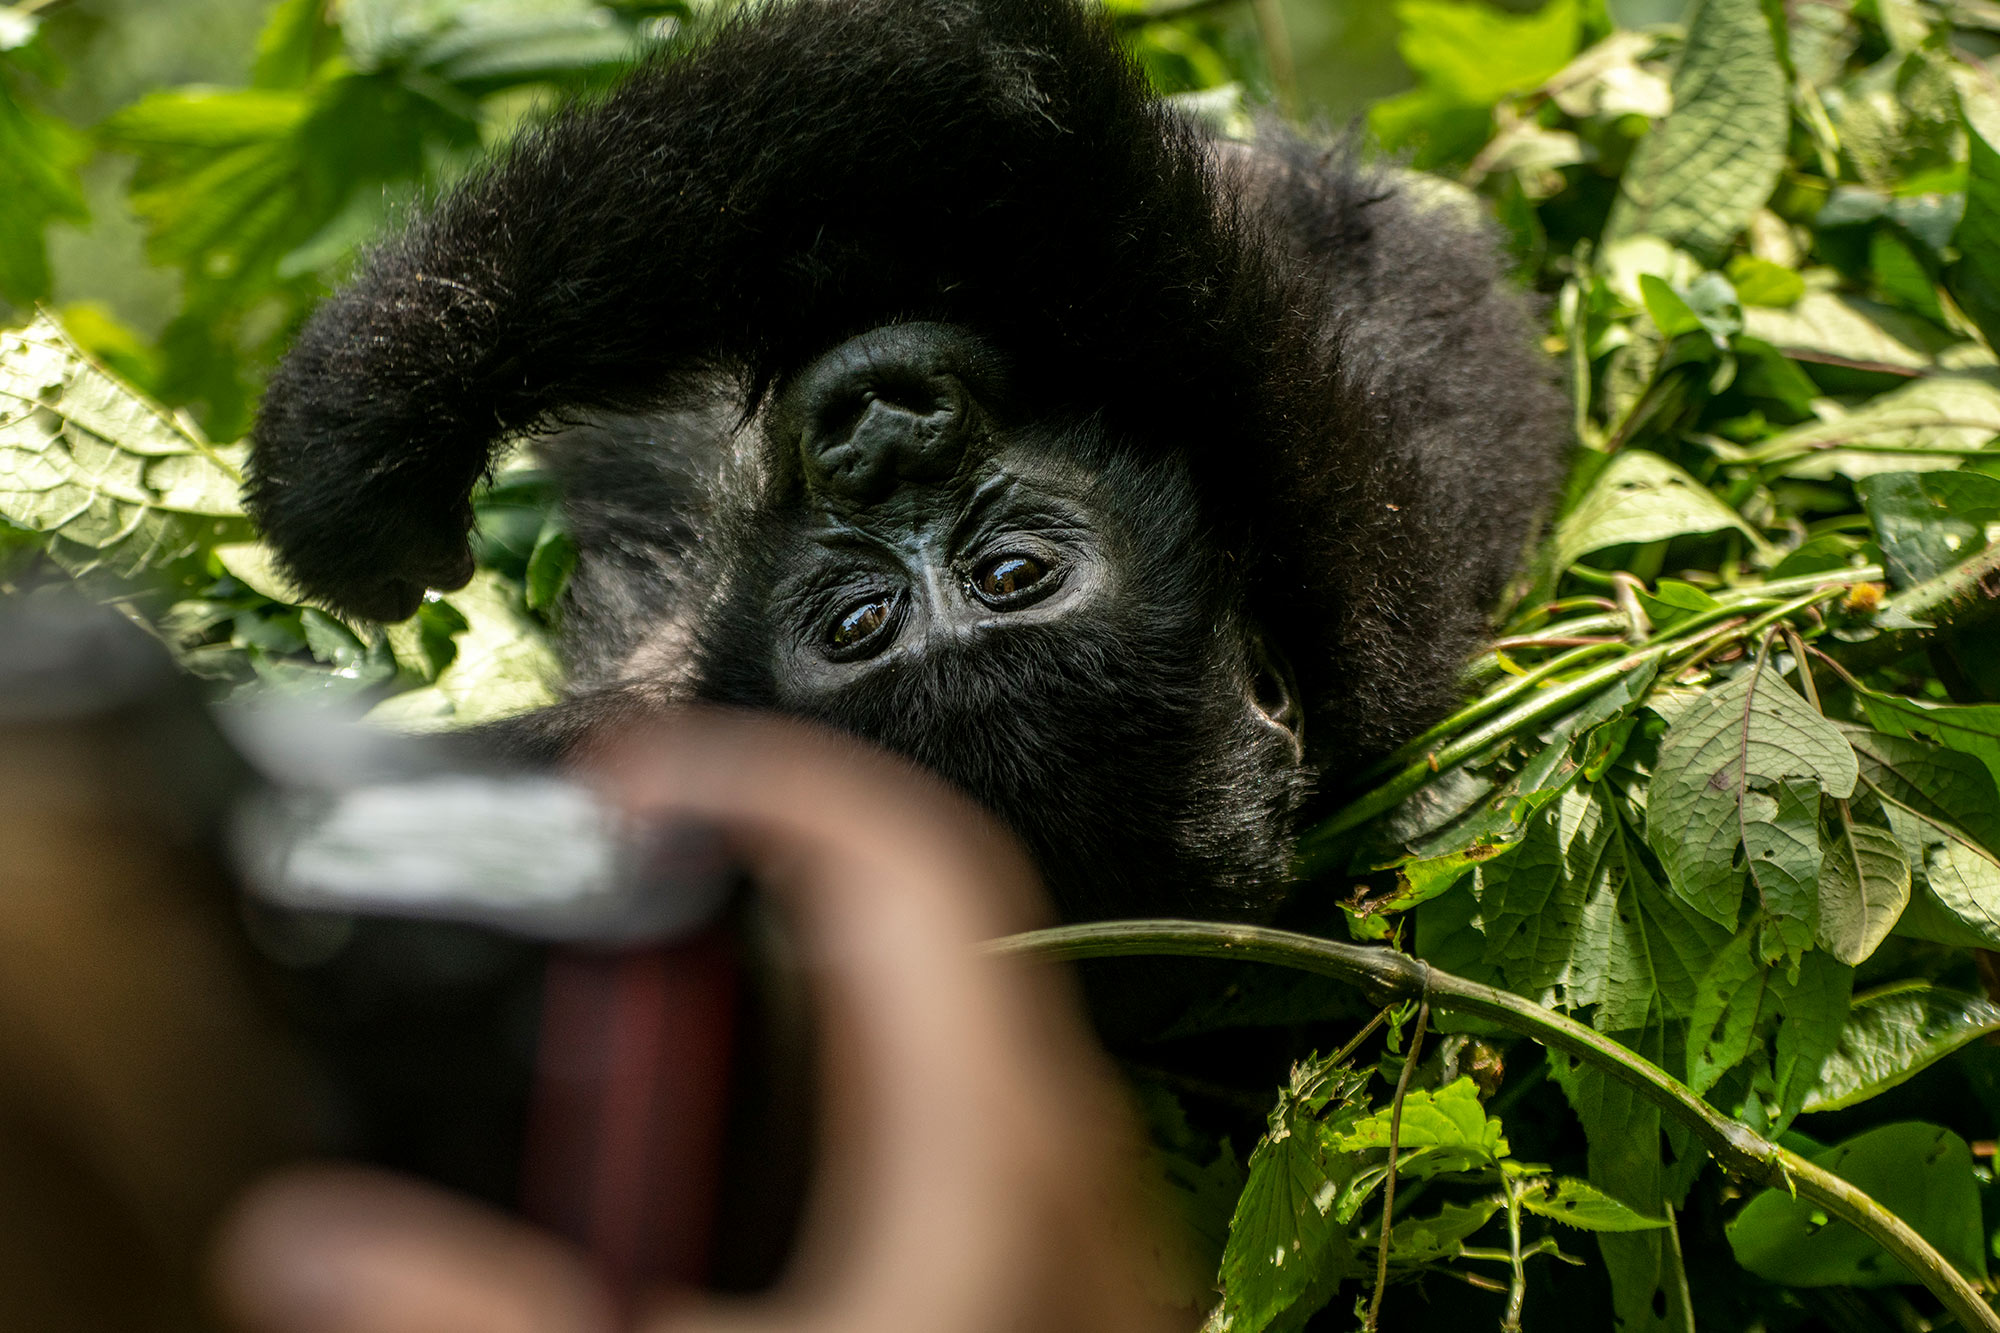 gorilla-baby-africa-rainforest-with-camera-tourist.jpg